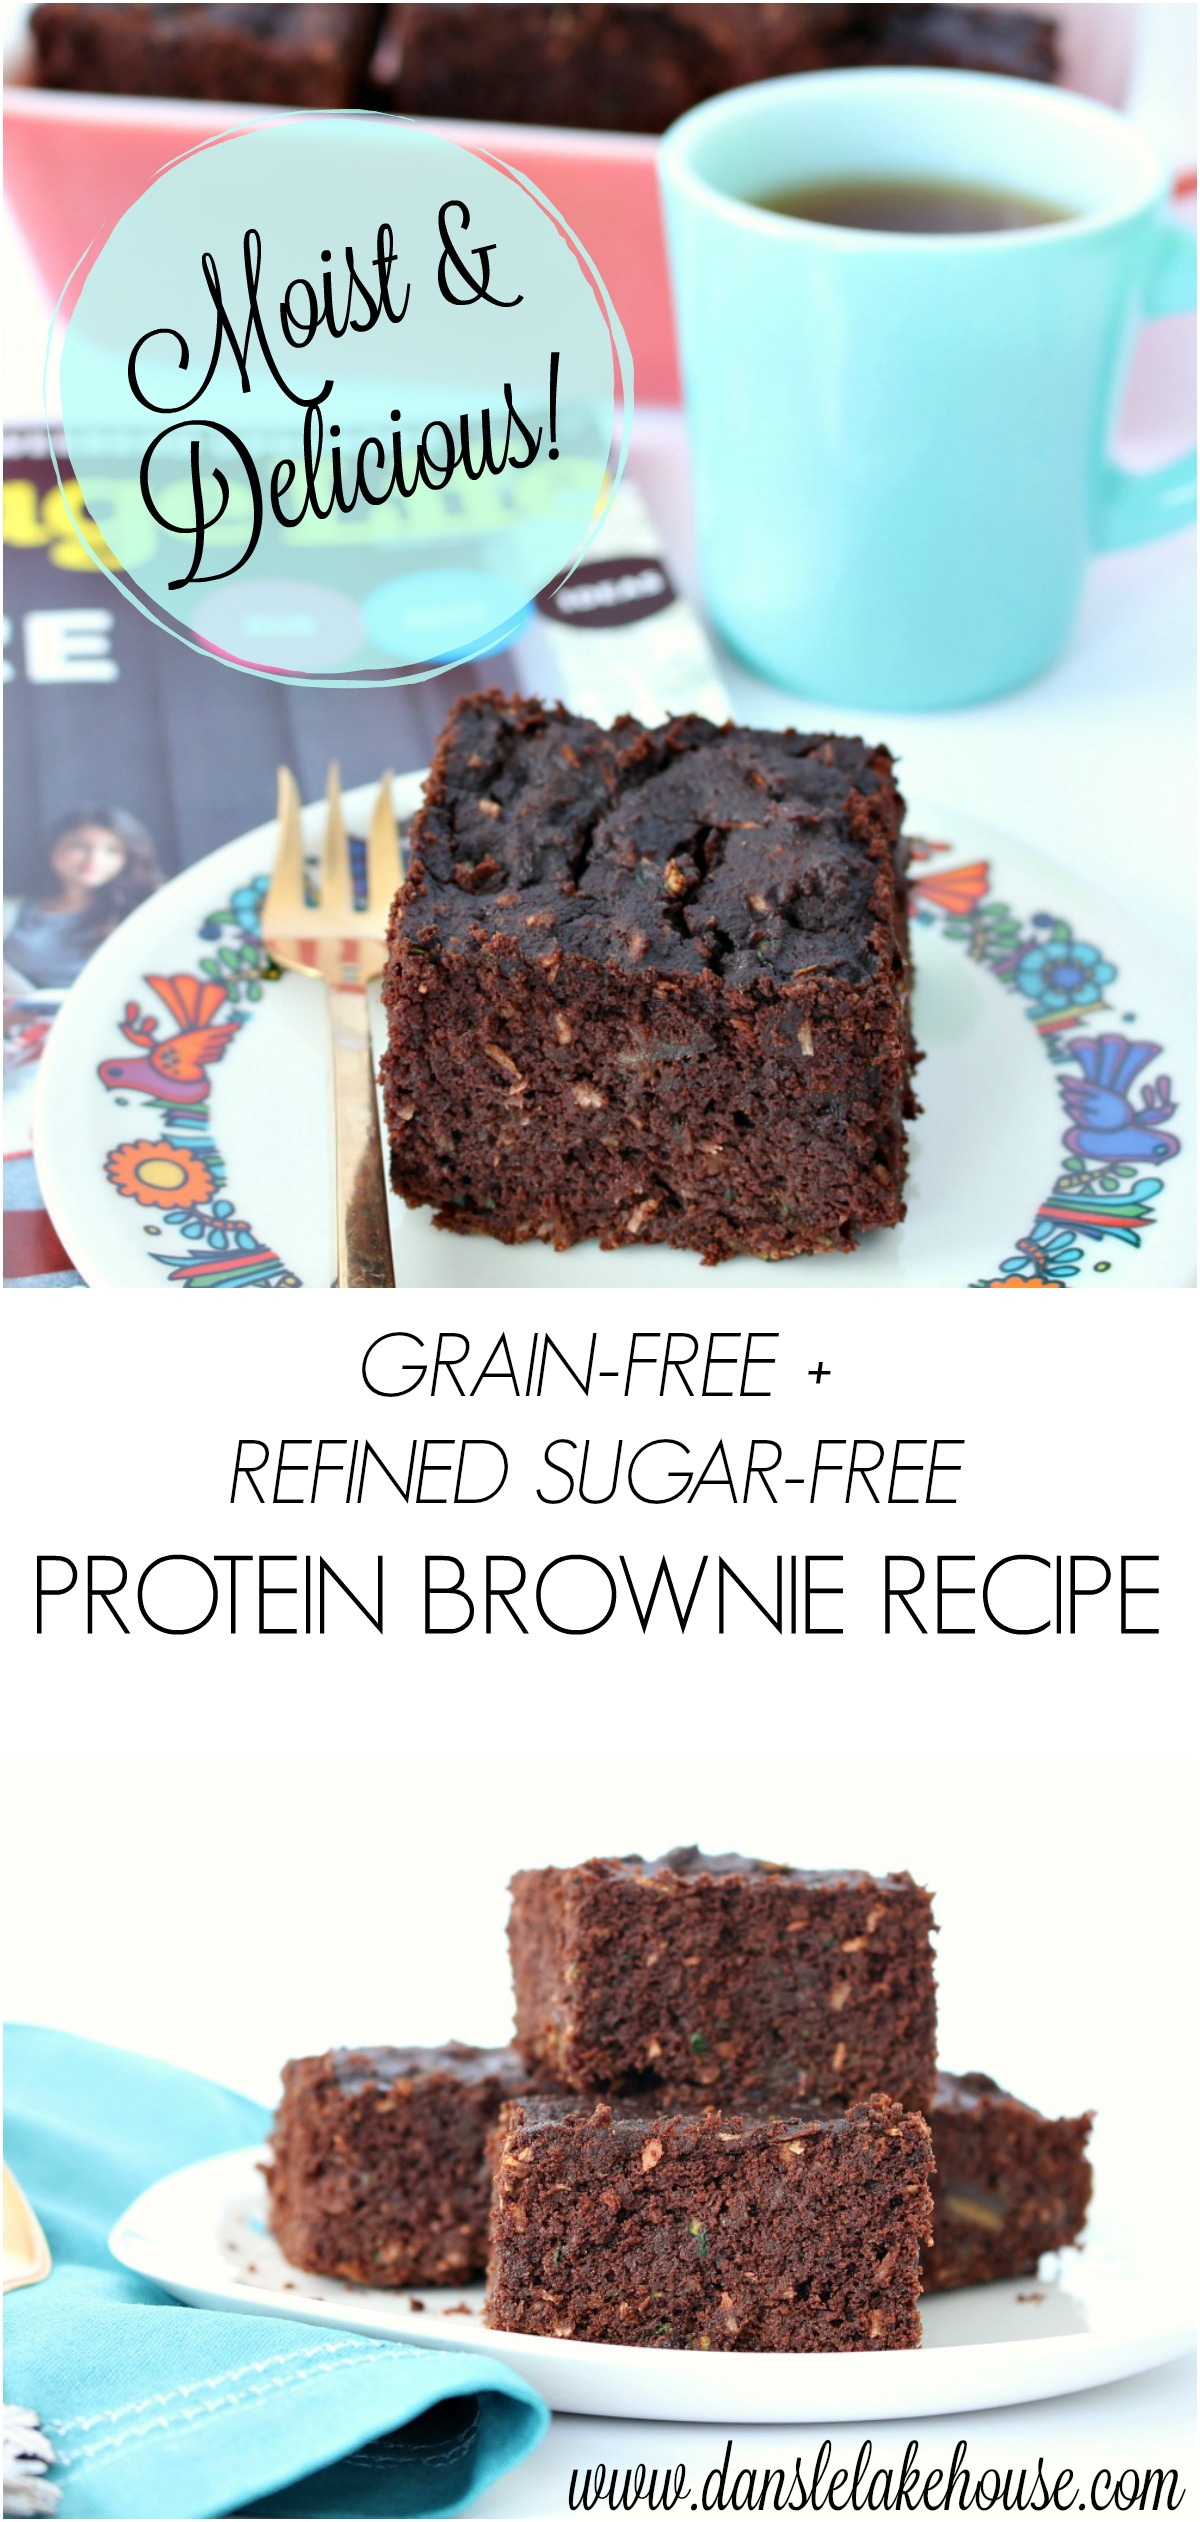 Moist and Delicious Grain-Free, Wheat-Free, Refined Sugar-Free Protein Brownie Recipe - a Healthier Zucchini Cake #sugarfreebaking #iquitsugar #proteinbrownie #healthydesserts